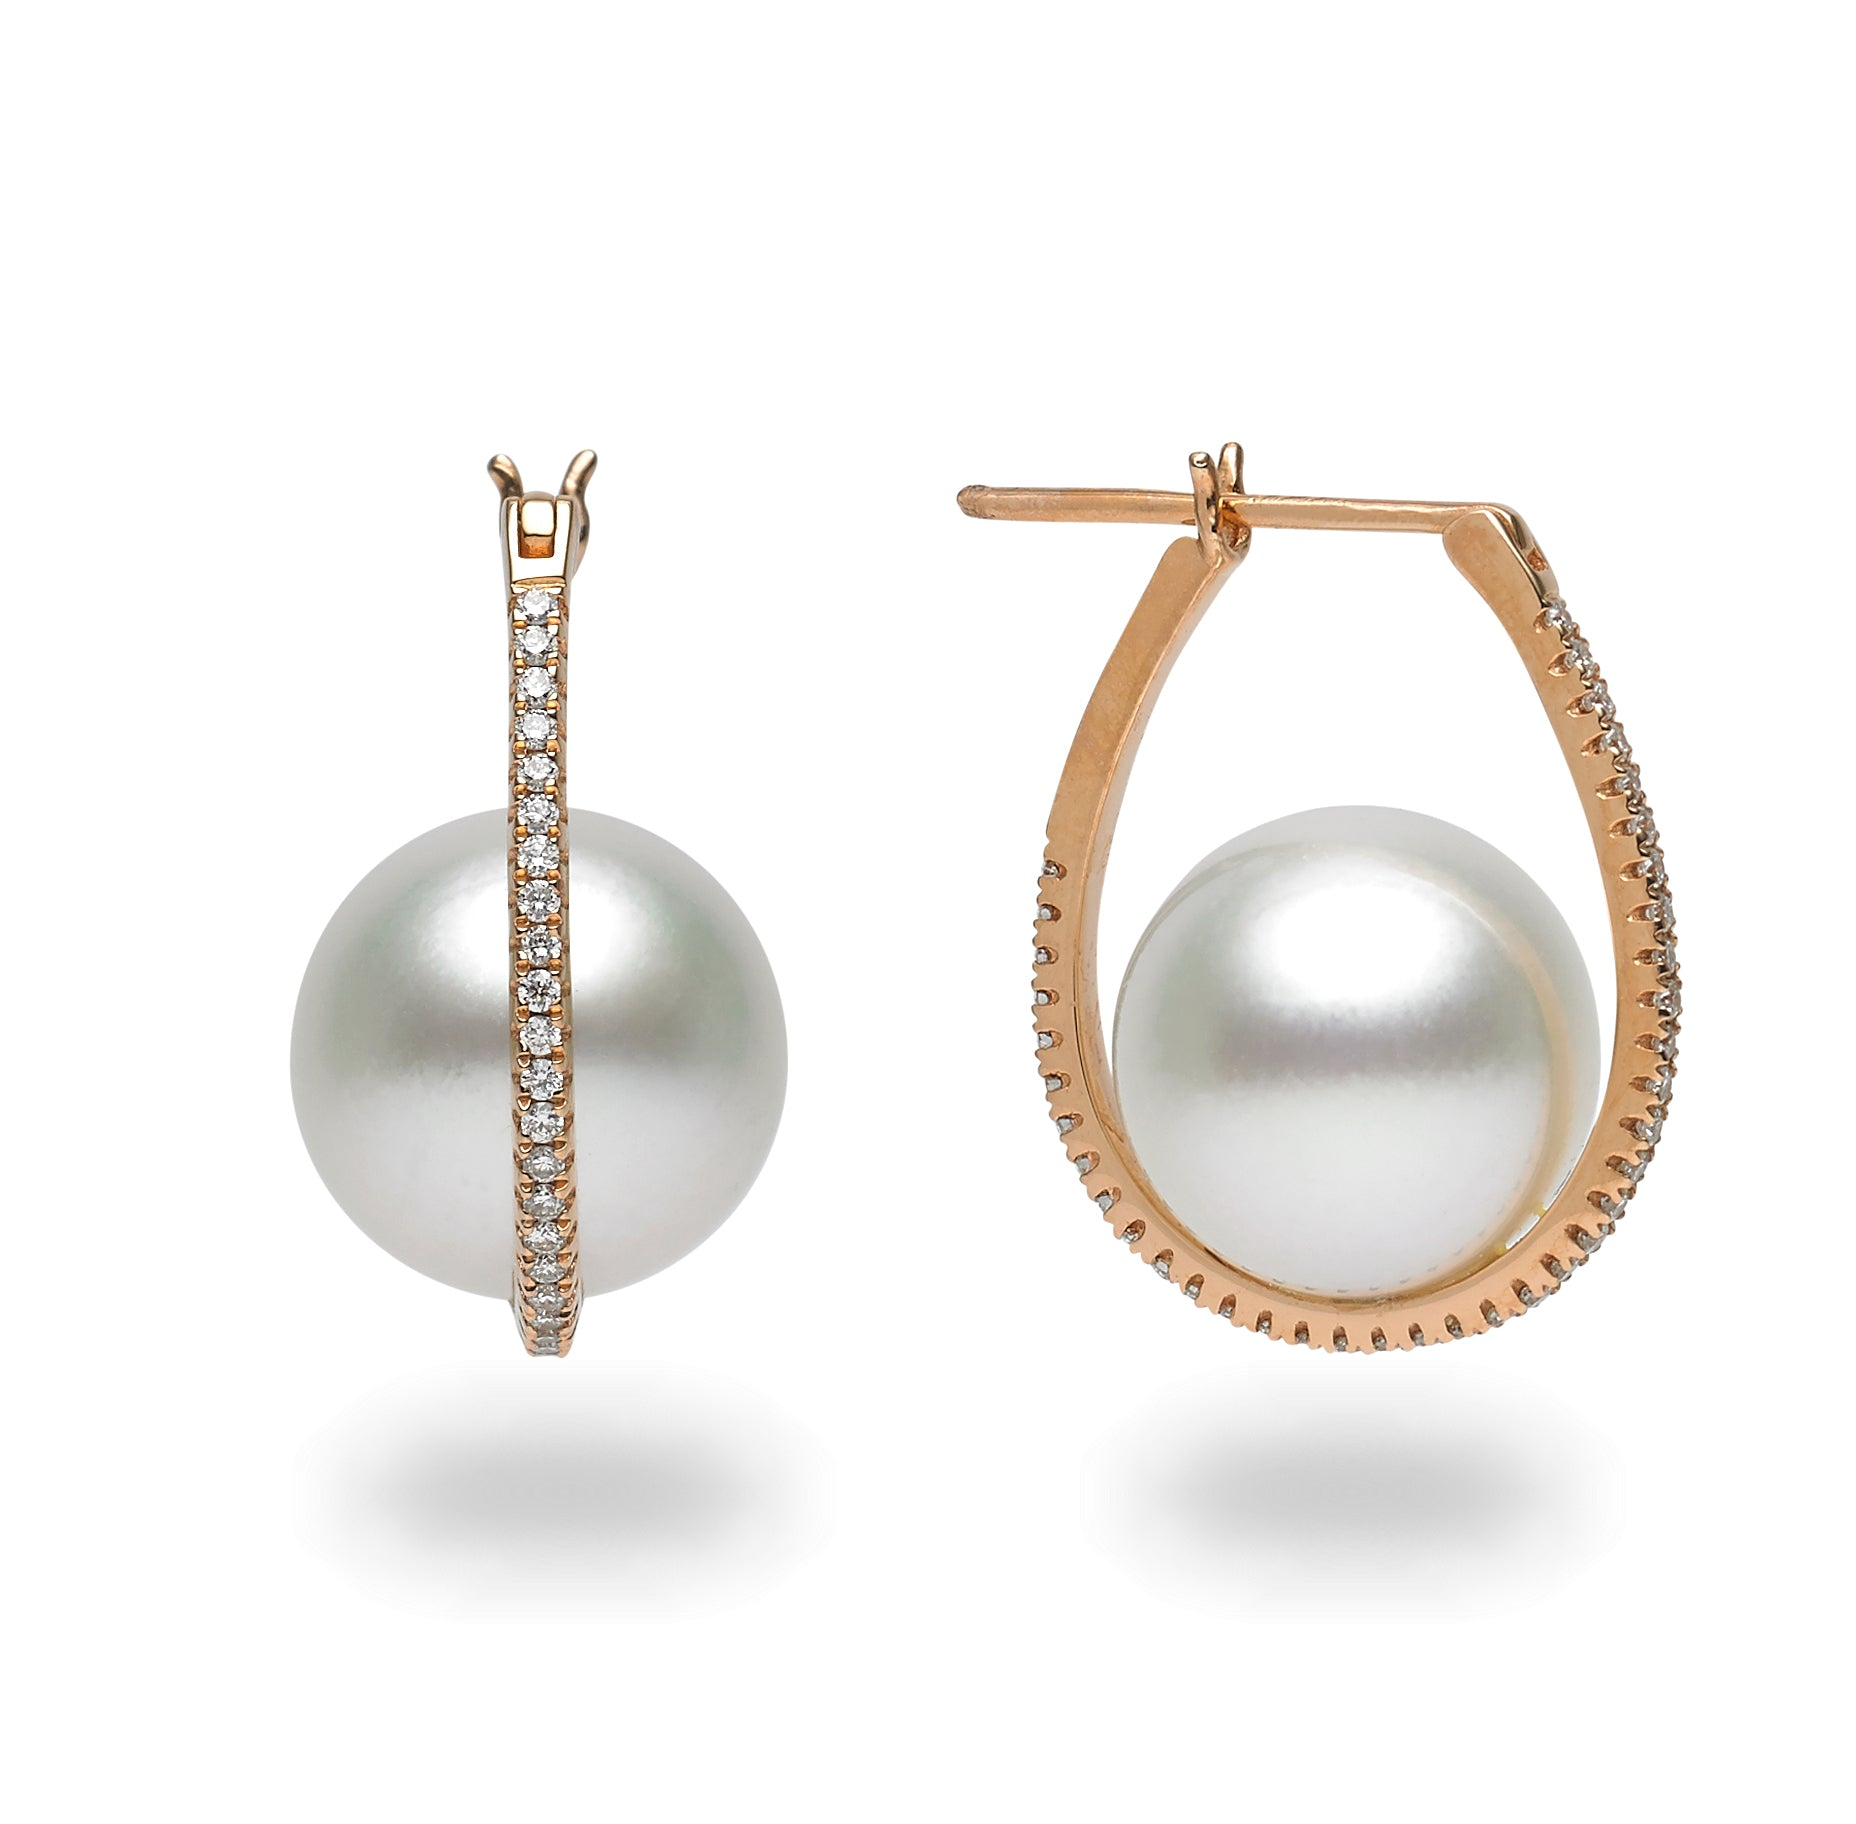 Galaxy Collection 12-13mm White South Sea Pearl Earrings